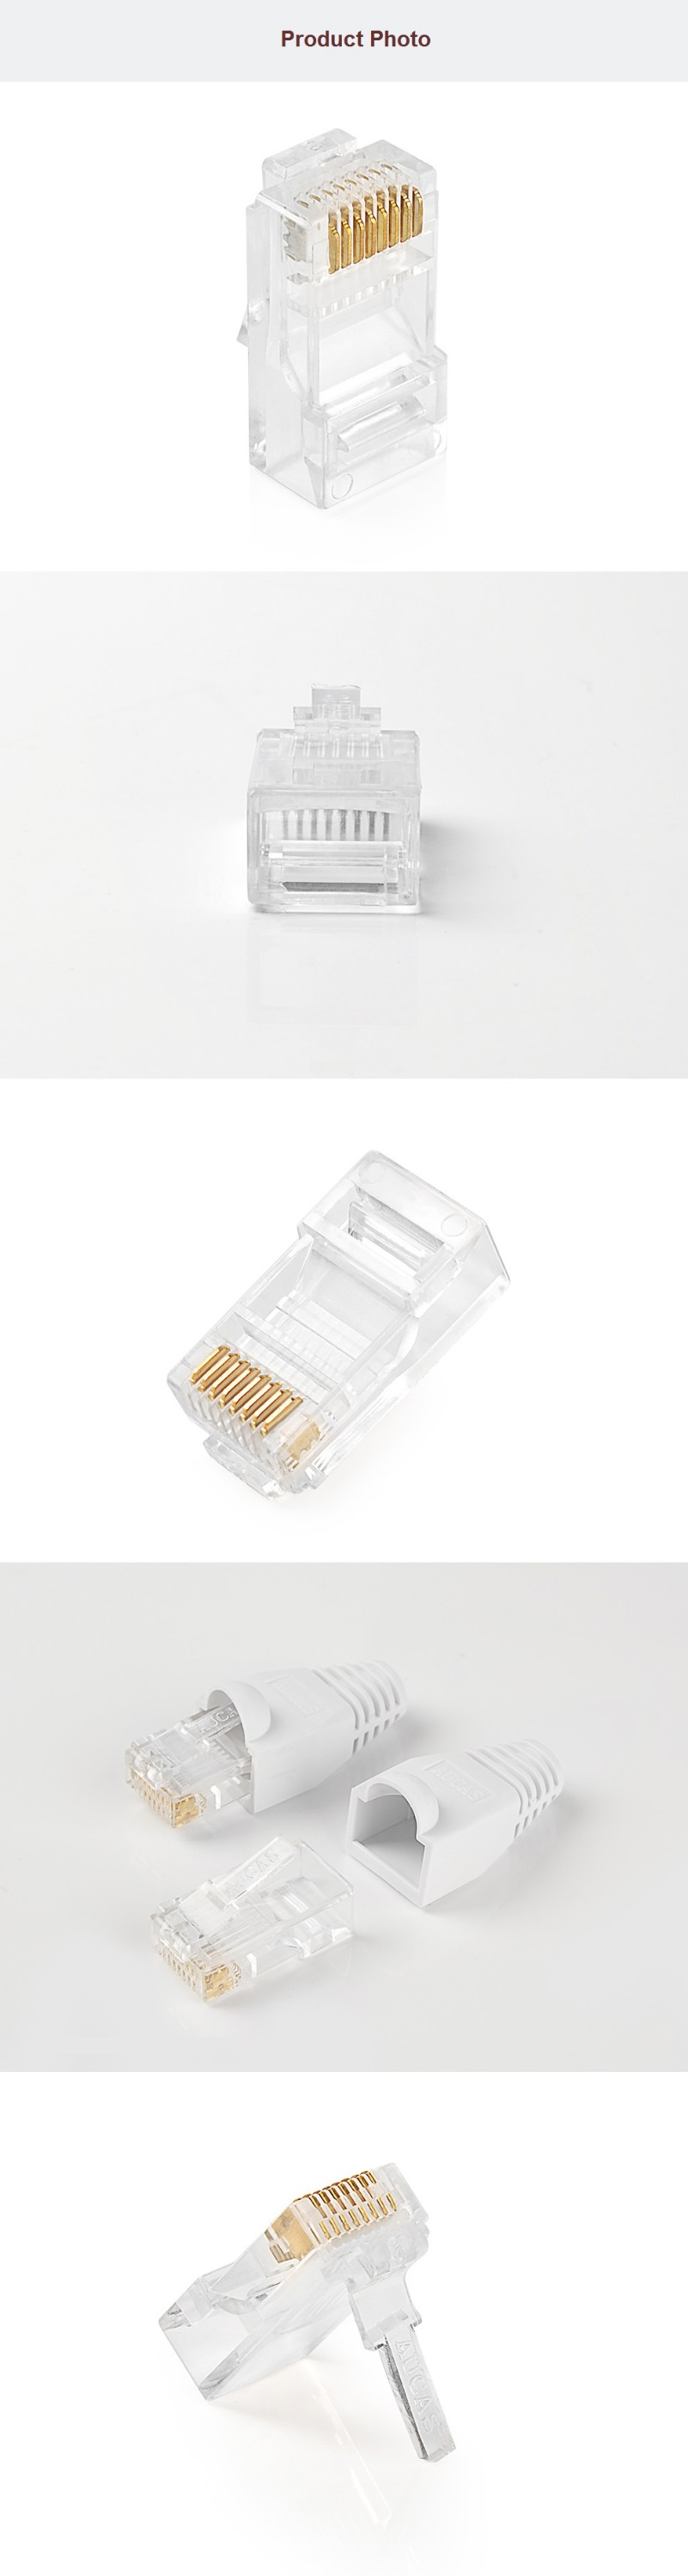 Cross Connection Rj45 Shielded Cat 5e 7ft Patch Cable 4 Pairs7 Wiring Diagram Connections